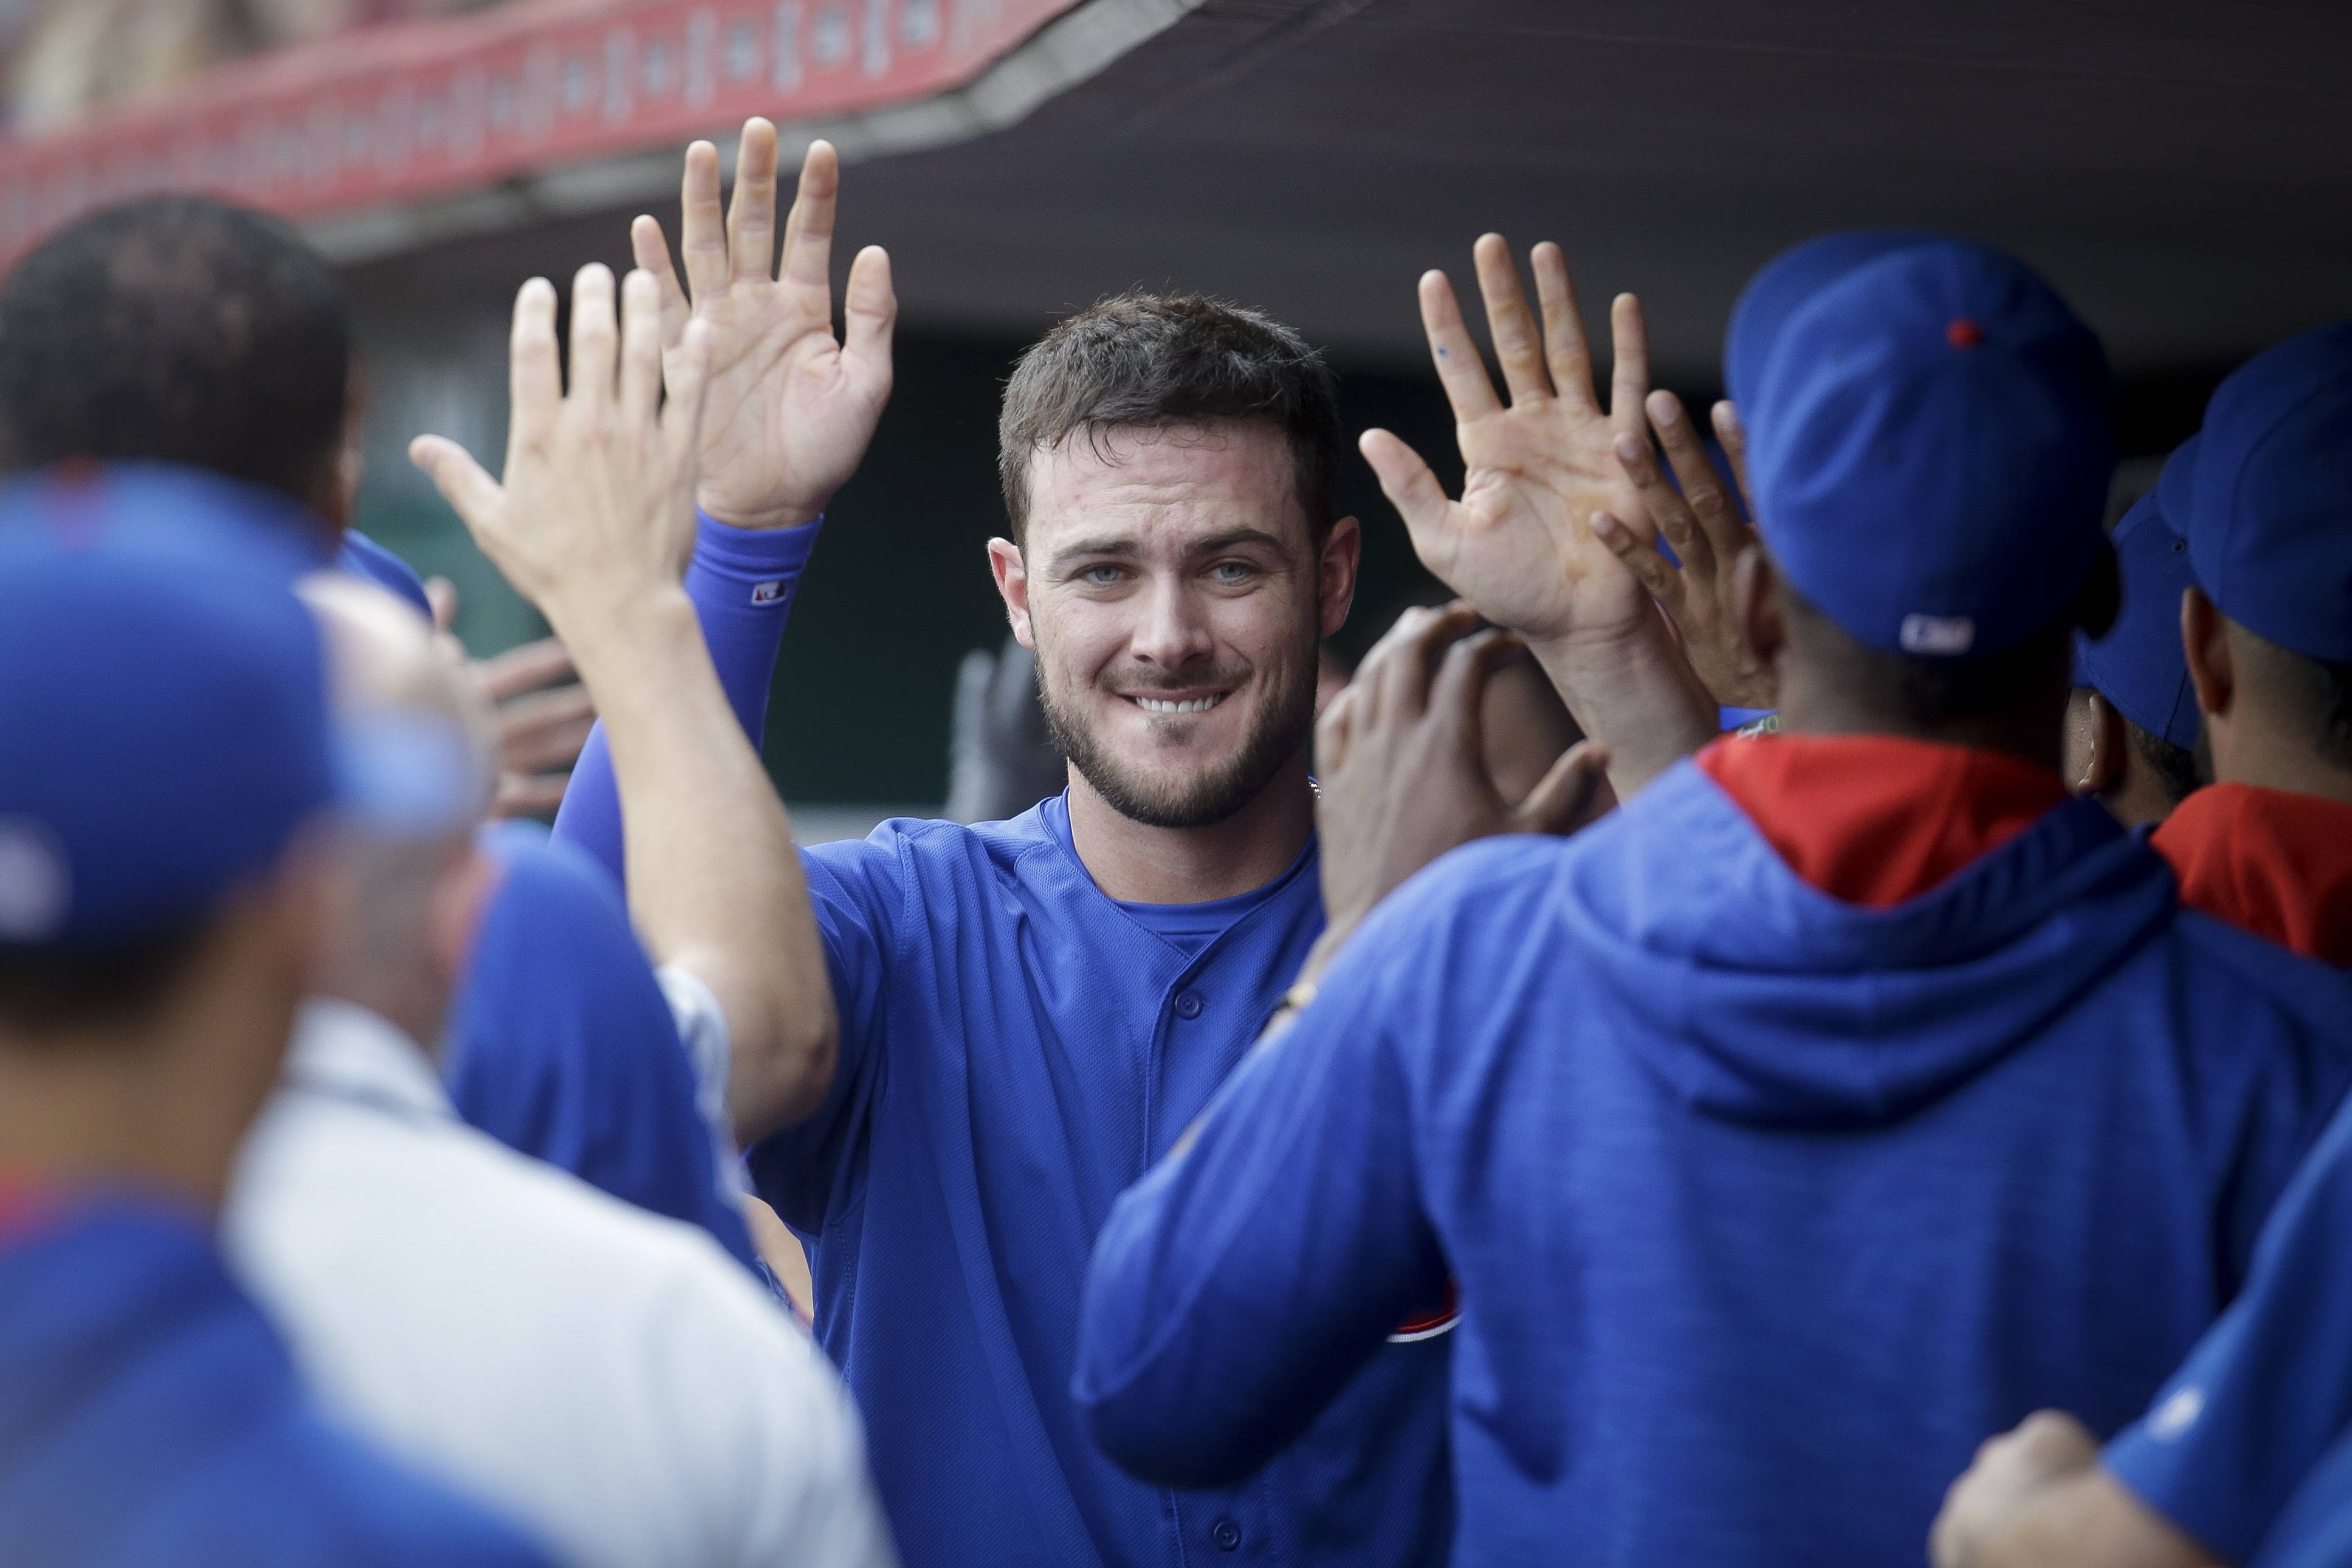 Chicago Cubs' Kris Bryant celebrates in the dugout after scoring on an RBI sacrifice fly by Miguel Montero off Cincinnati Reds starting pitcher Dan Straily in the first inning of a baseball game, Monday, June 27, 2016, in Cincinnati. (AP Photo/John Minchillo)